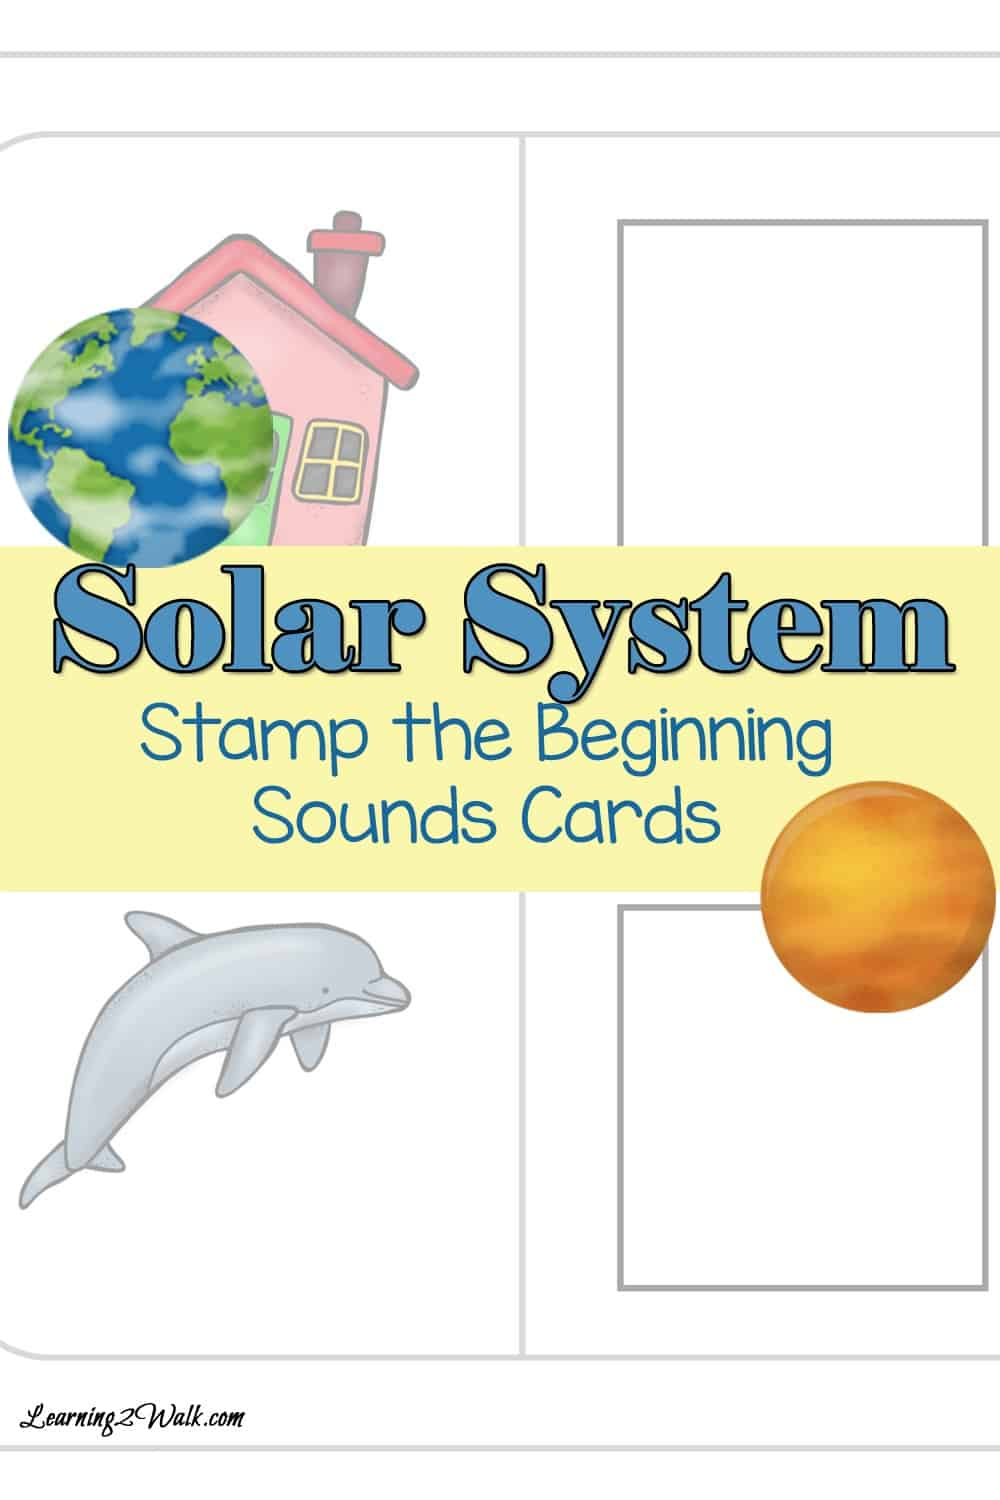 My daughter loved these solar system stamp the beginning sound cards to work on identifying her beginning sounds .